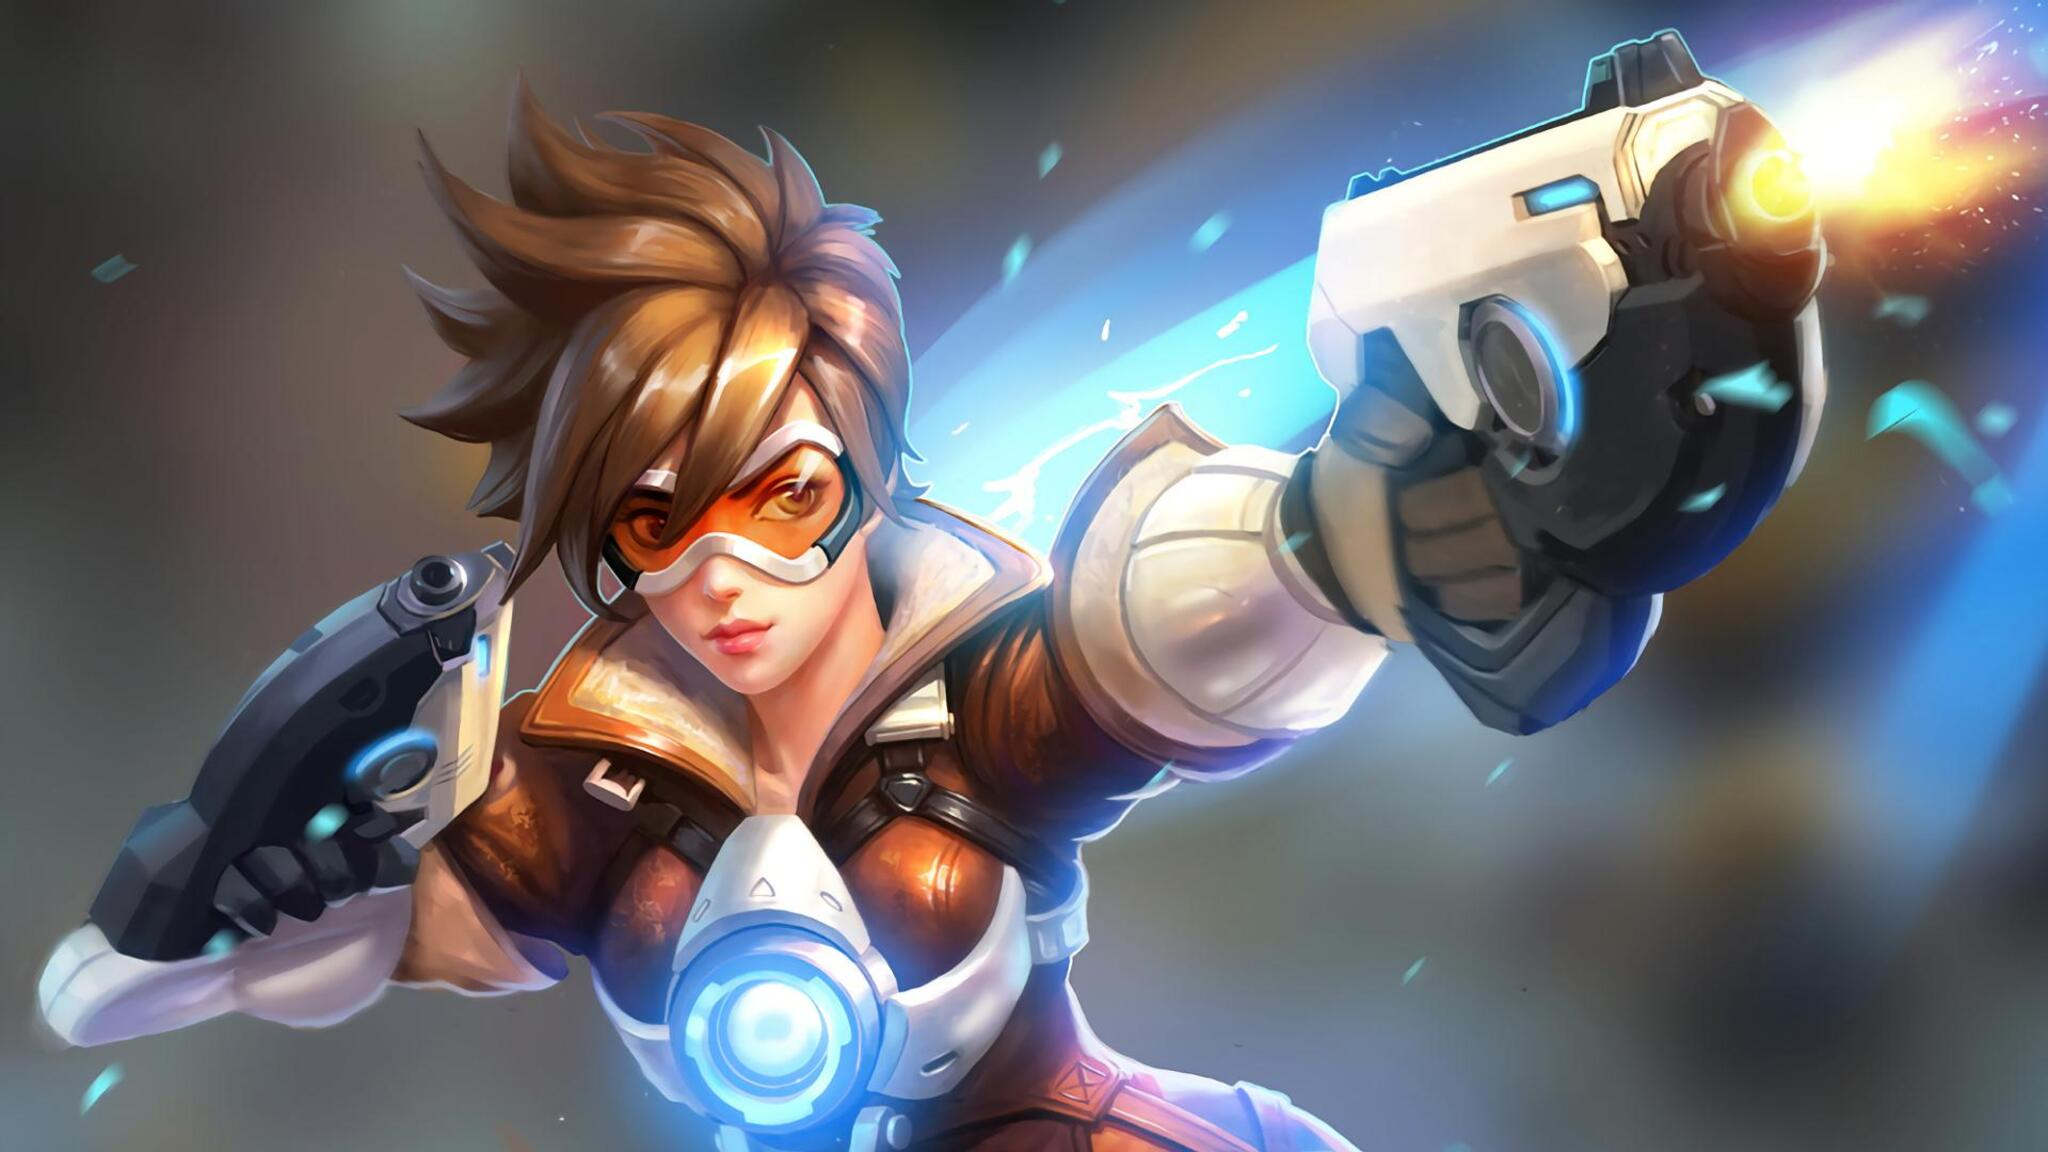 Tracer Overwatch Artwork Hd | Games HD 4k Wallpapers